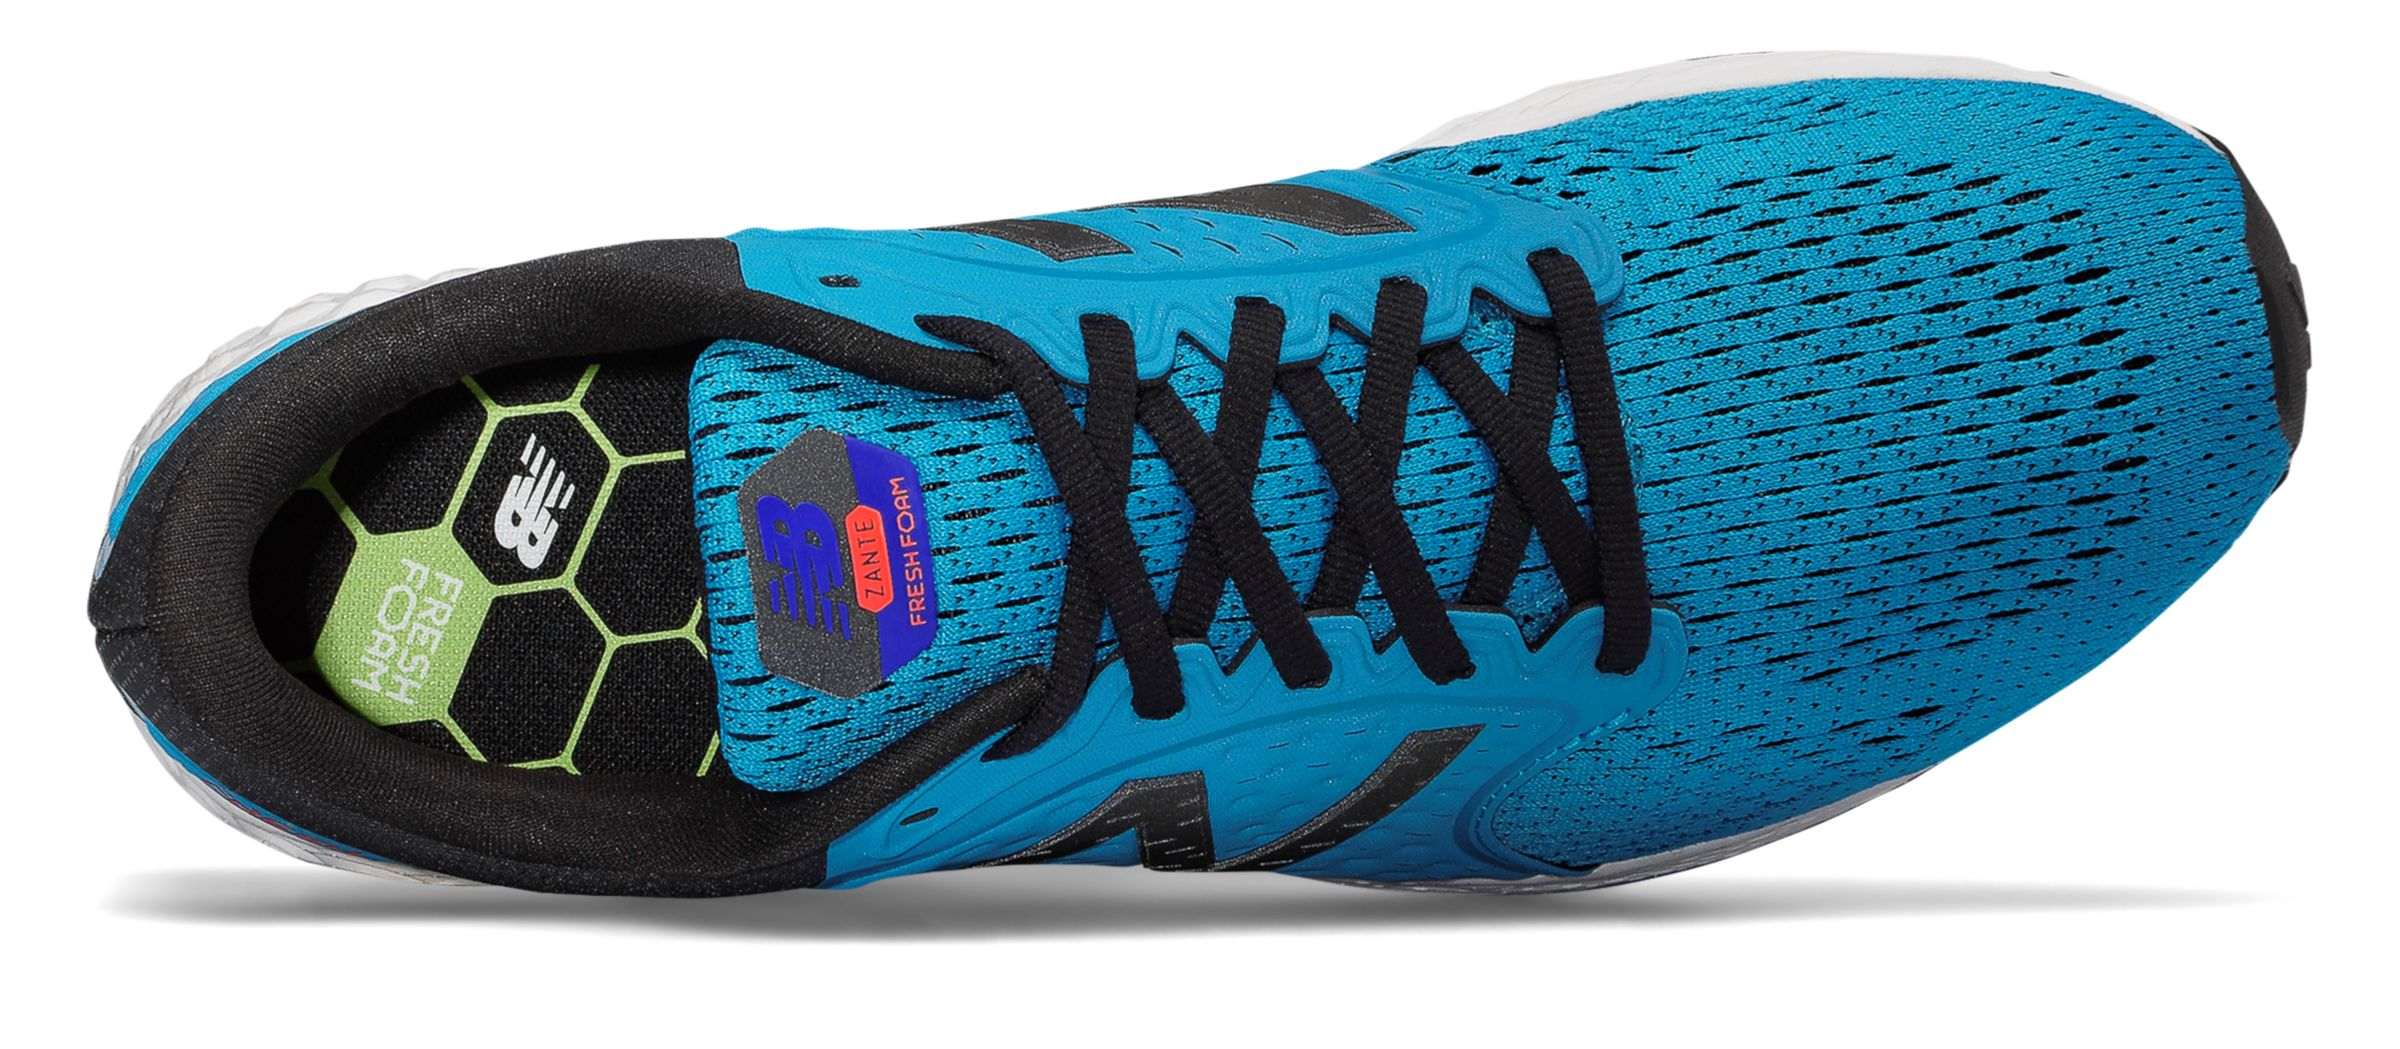 NB Fresh Foam Zante v4, Maldives Blue with Black